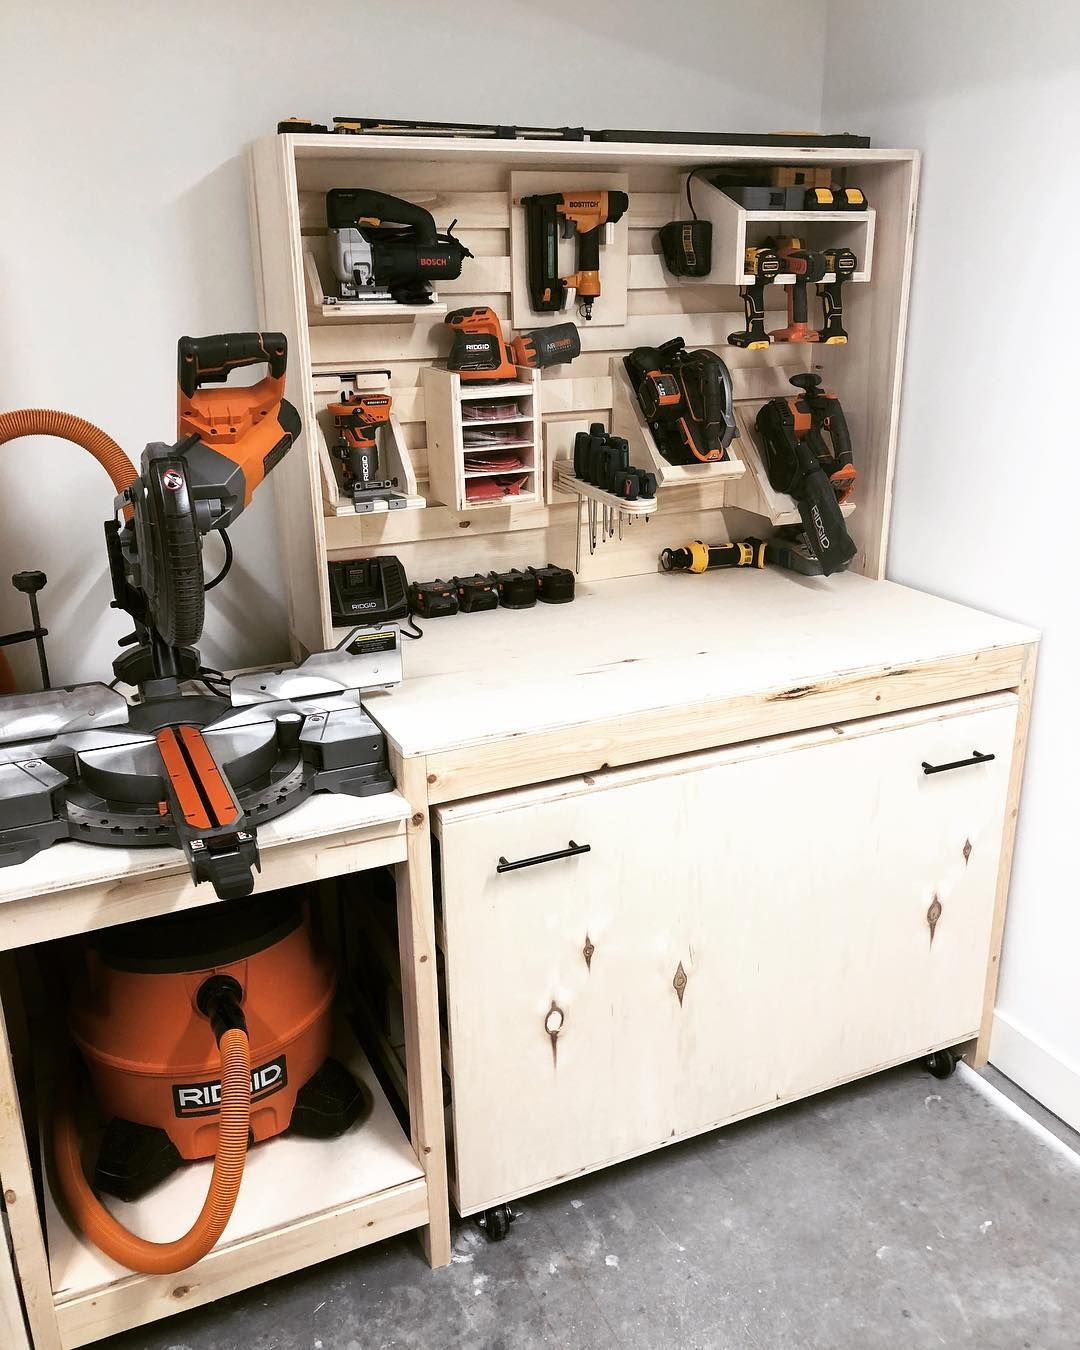 Finished Off The French Cleat Tool Wall With The Addition Of My Ridgid Gen5x Circular Saw And Belt Woodworking Jigsaw Home Organization Hacks Mitre Saw Station